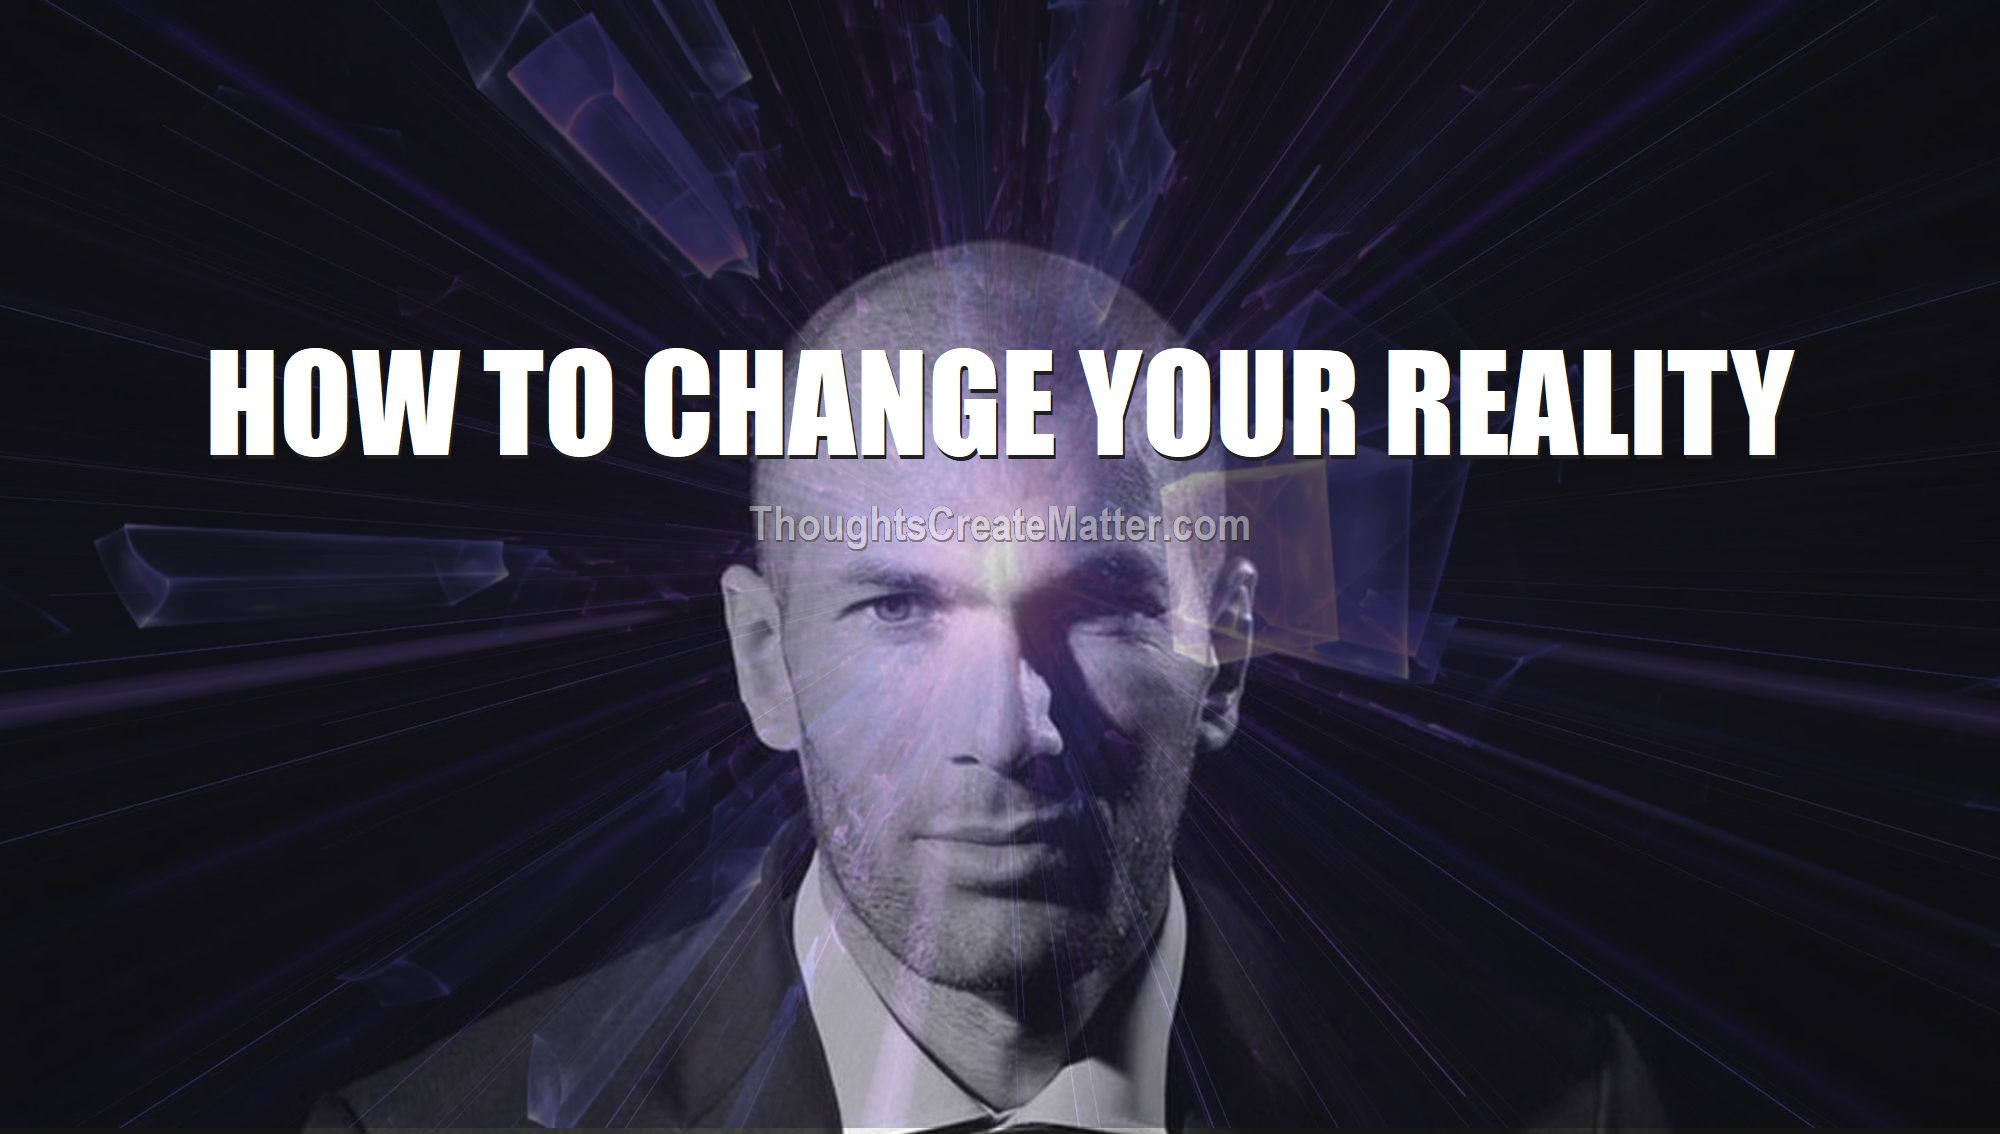 Man depicts how your-beliefs-thoughts-emotions-create-your-reality-how-to-change-your-reality-life-experience